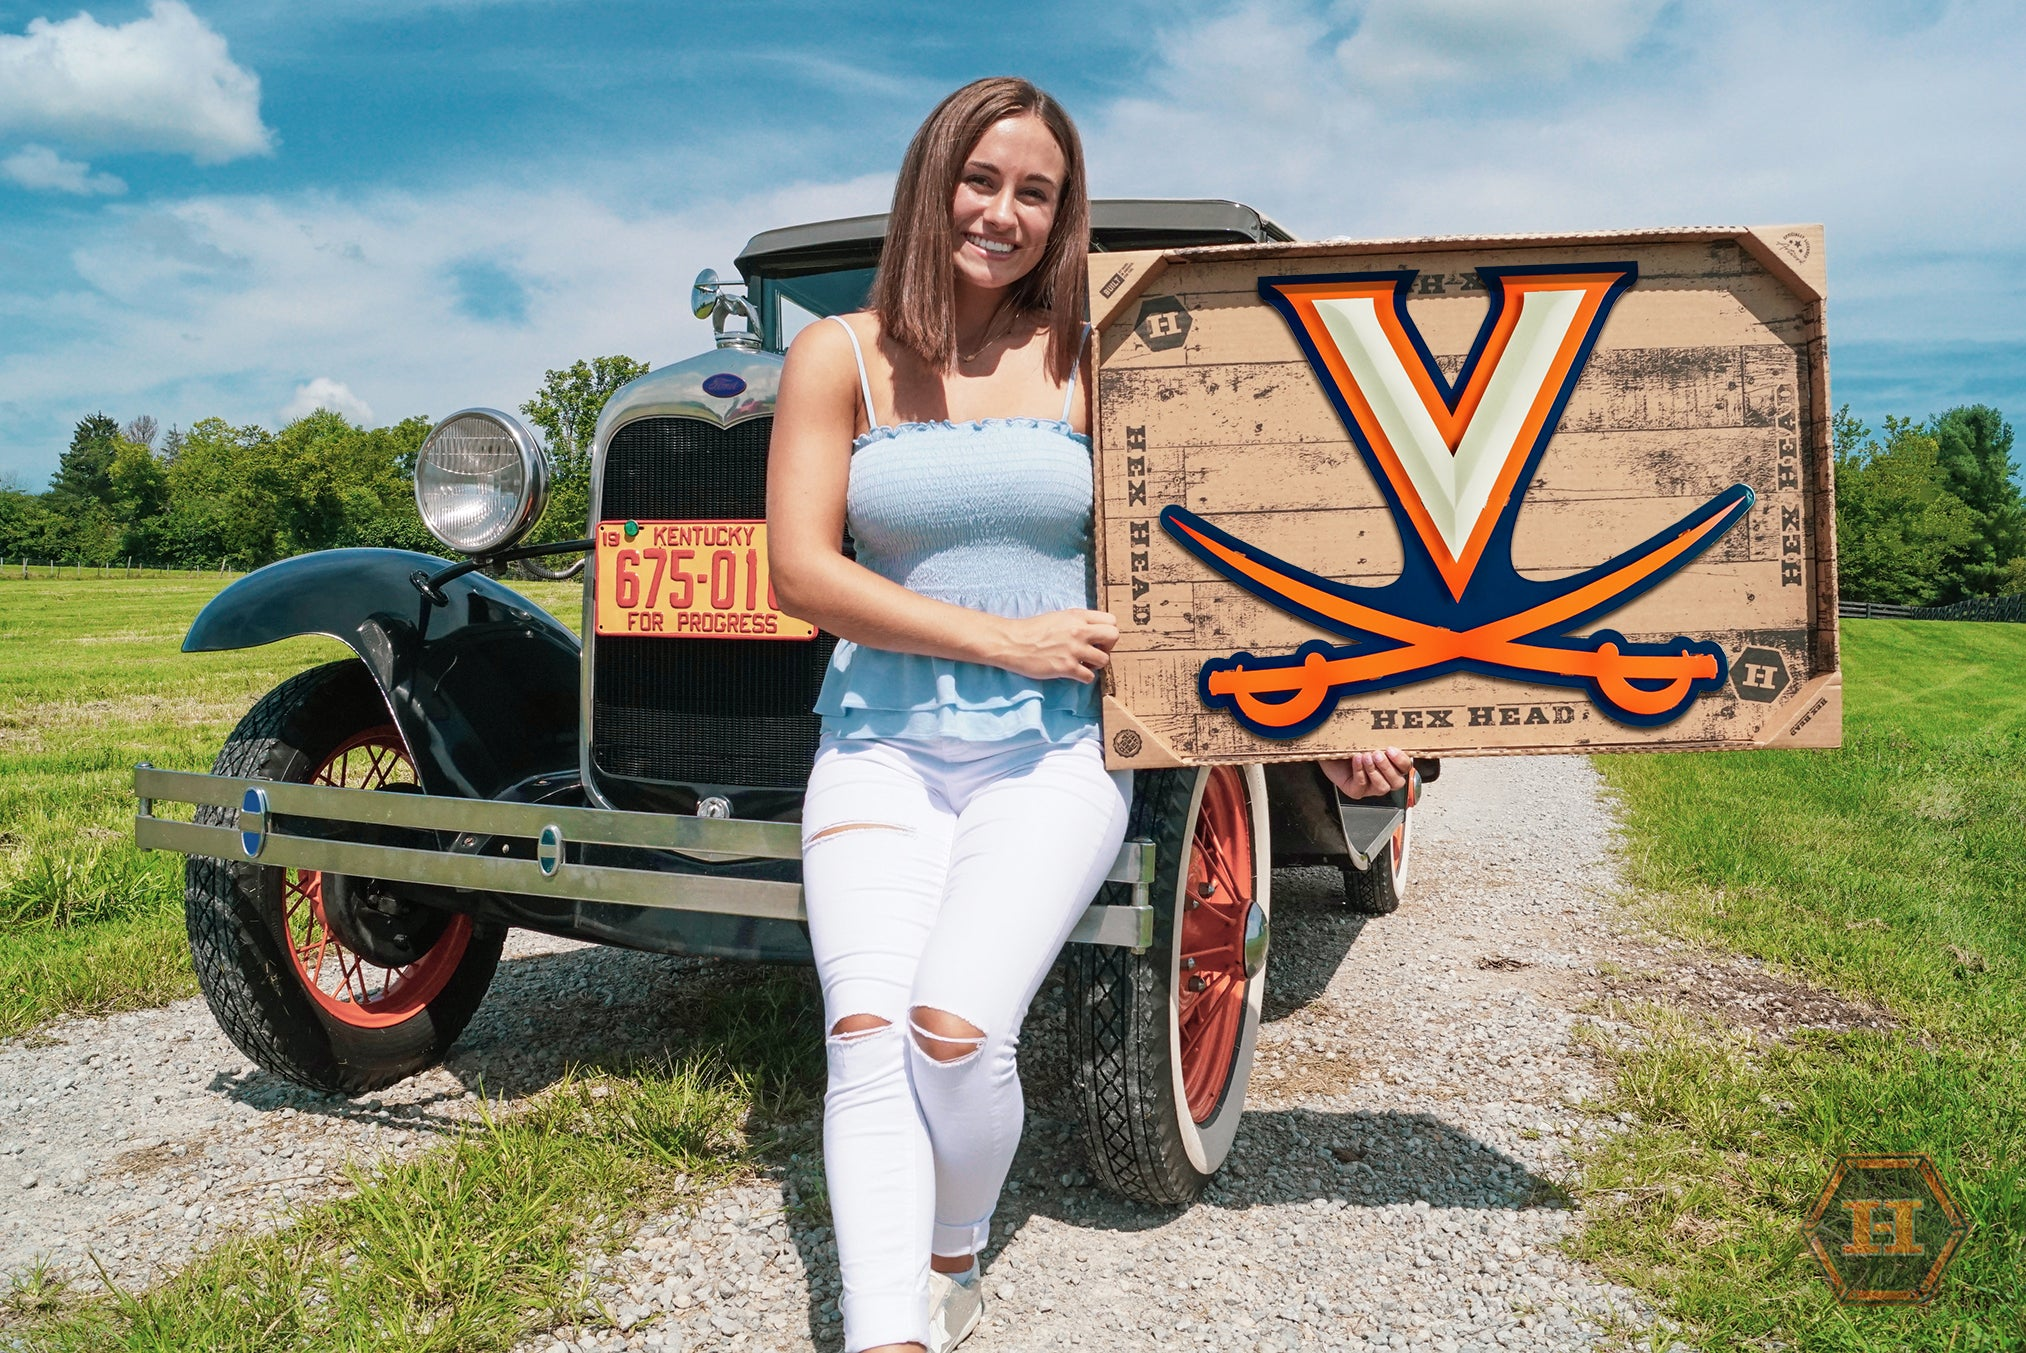 virginia, cavaliers, va, uva